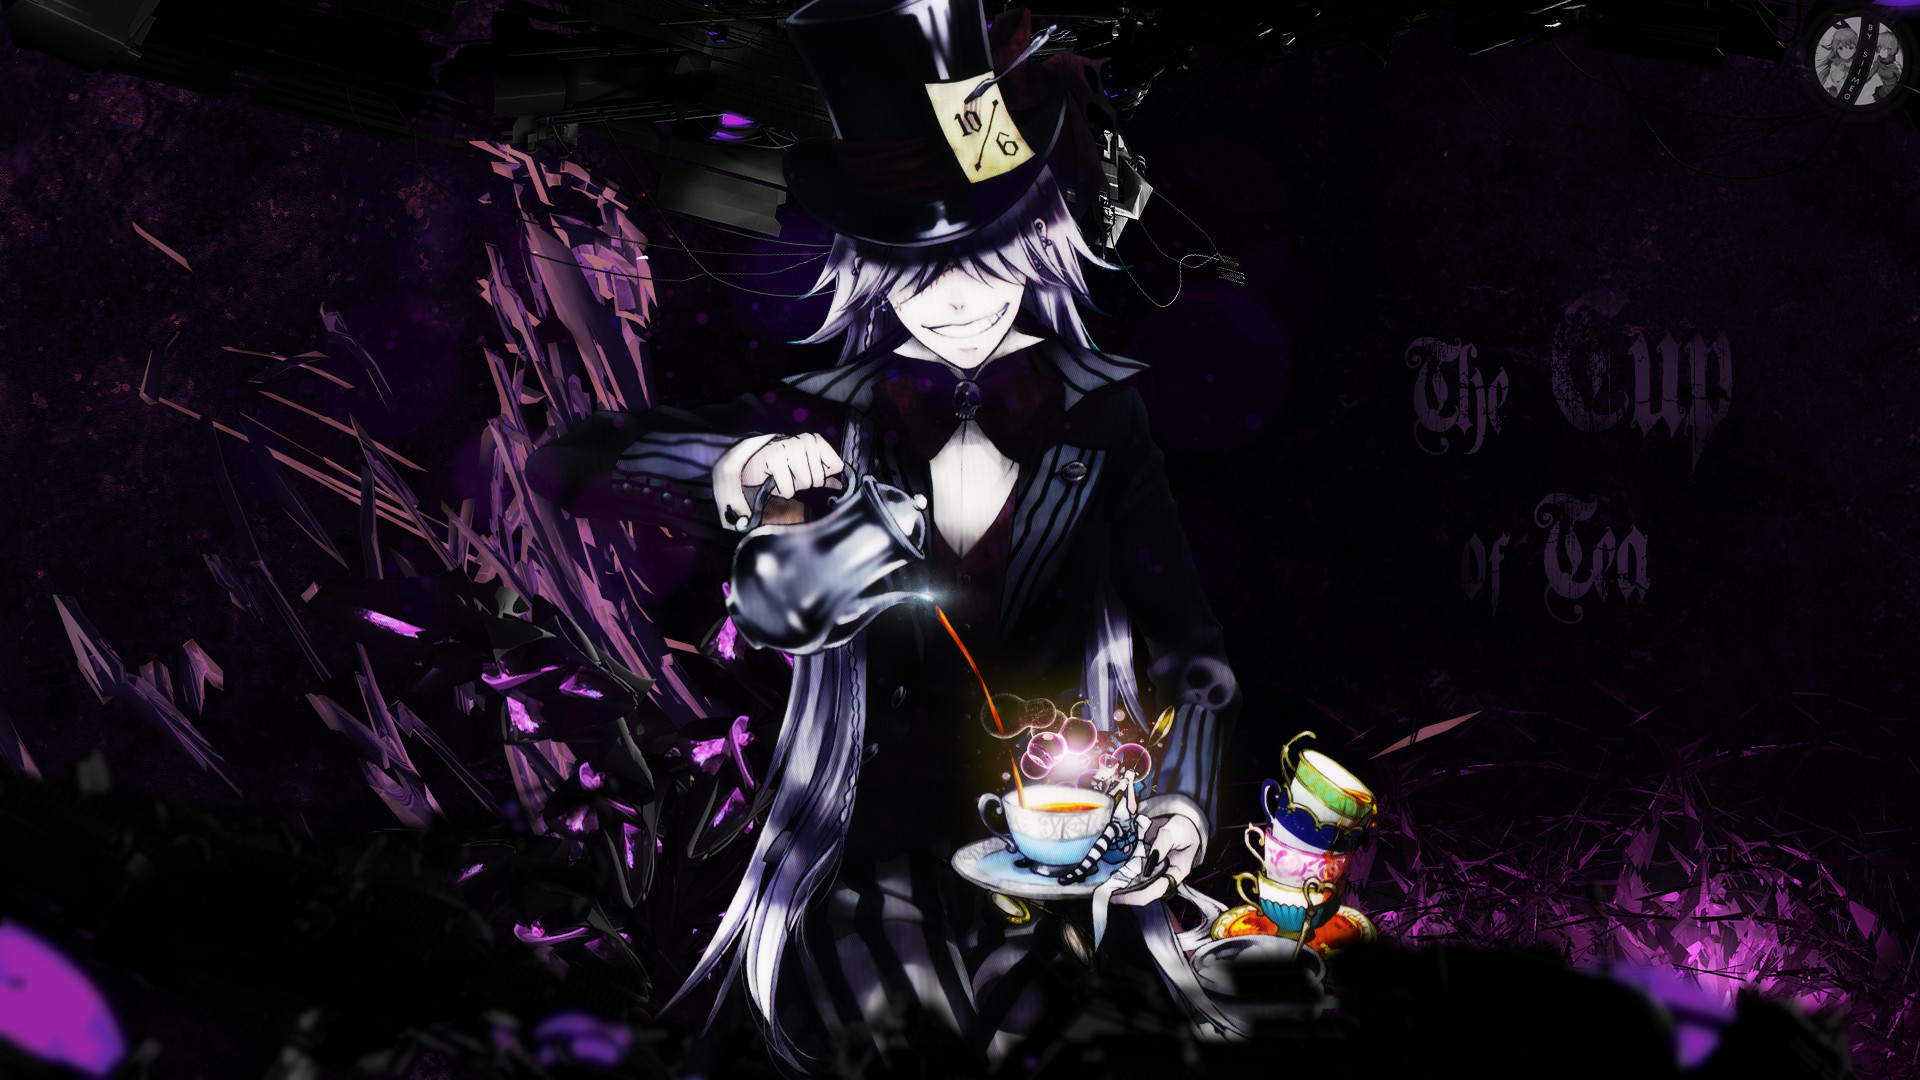 1920x1080 Undertaker Kuroshitsuji Zerochan Anime Image Board Source · The cup of tea  Black Butler Wallpaper by Siimeo